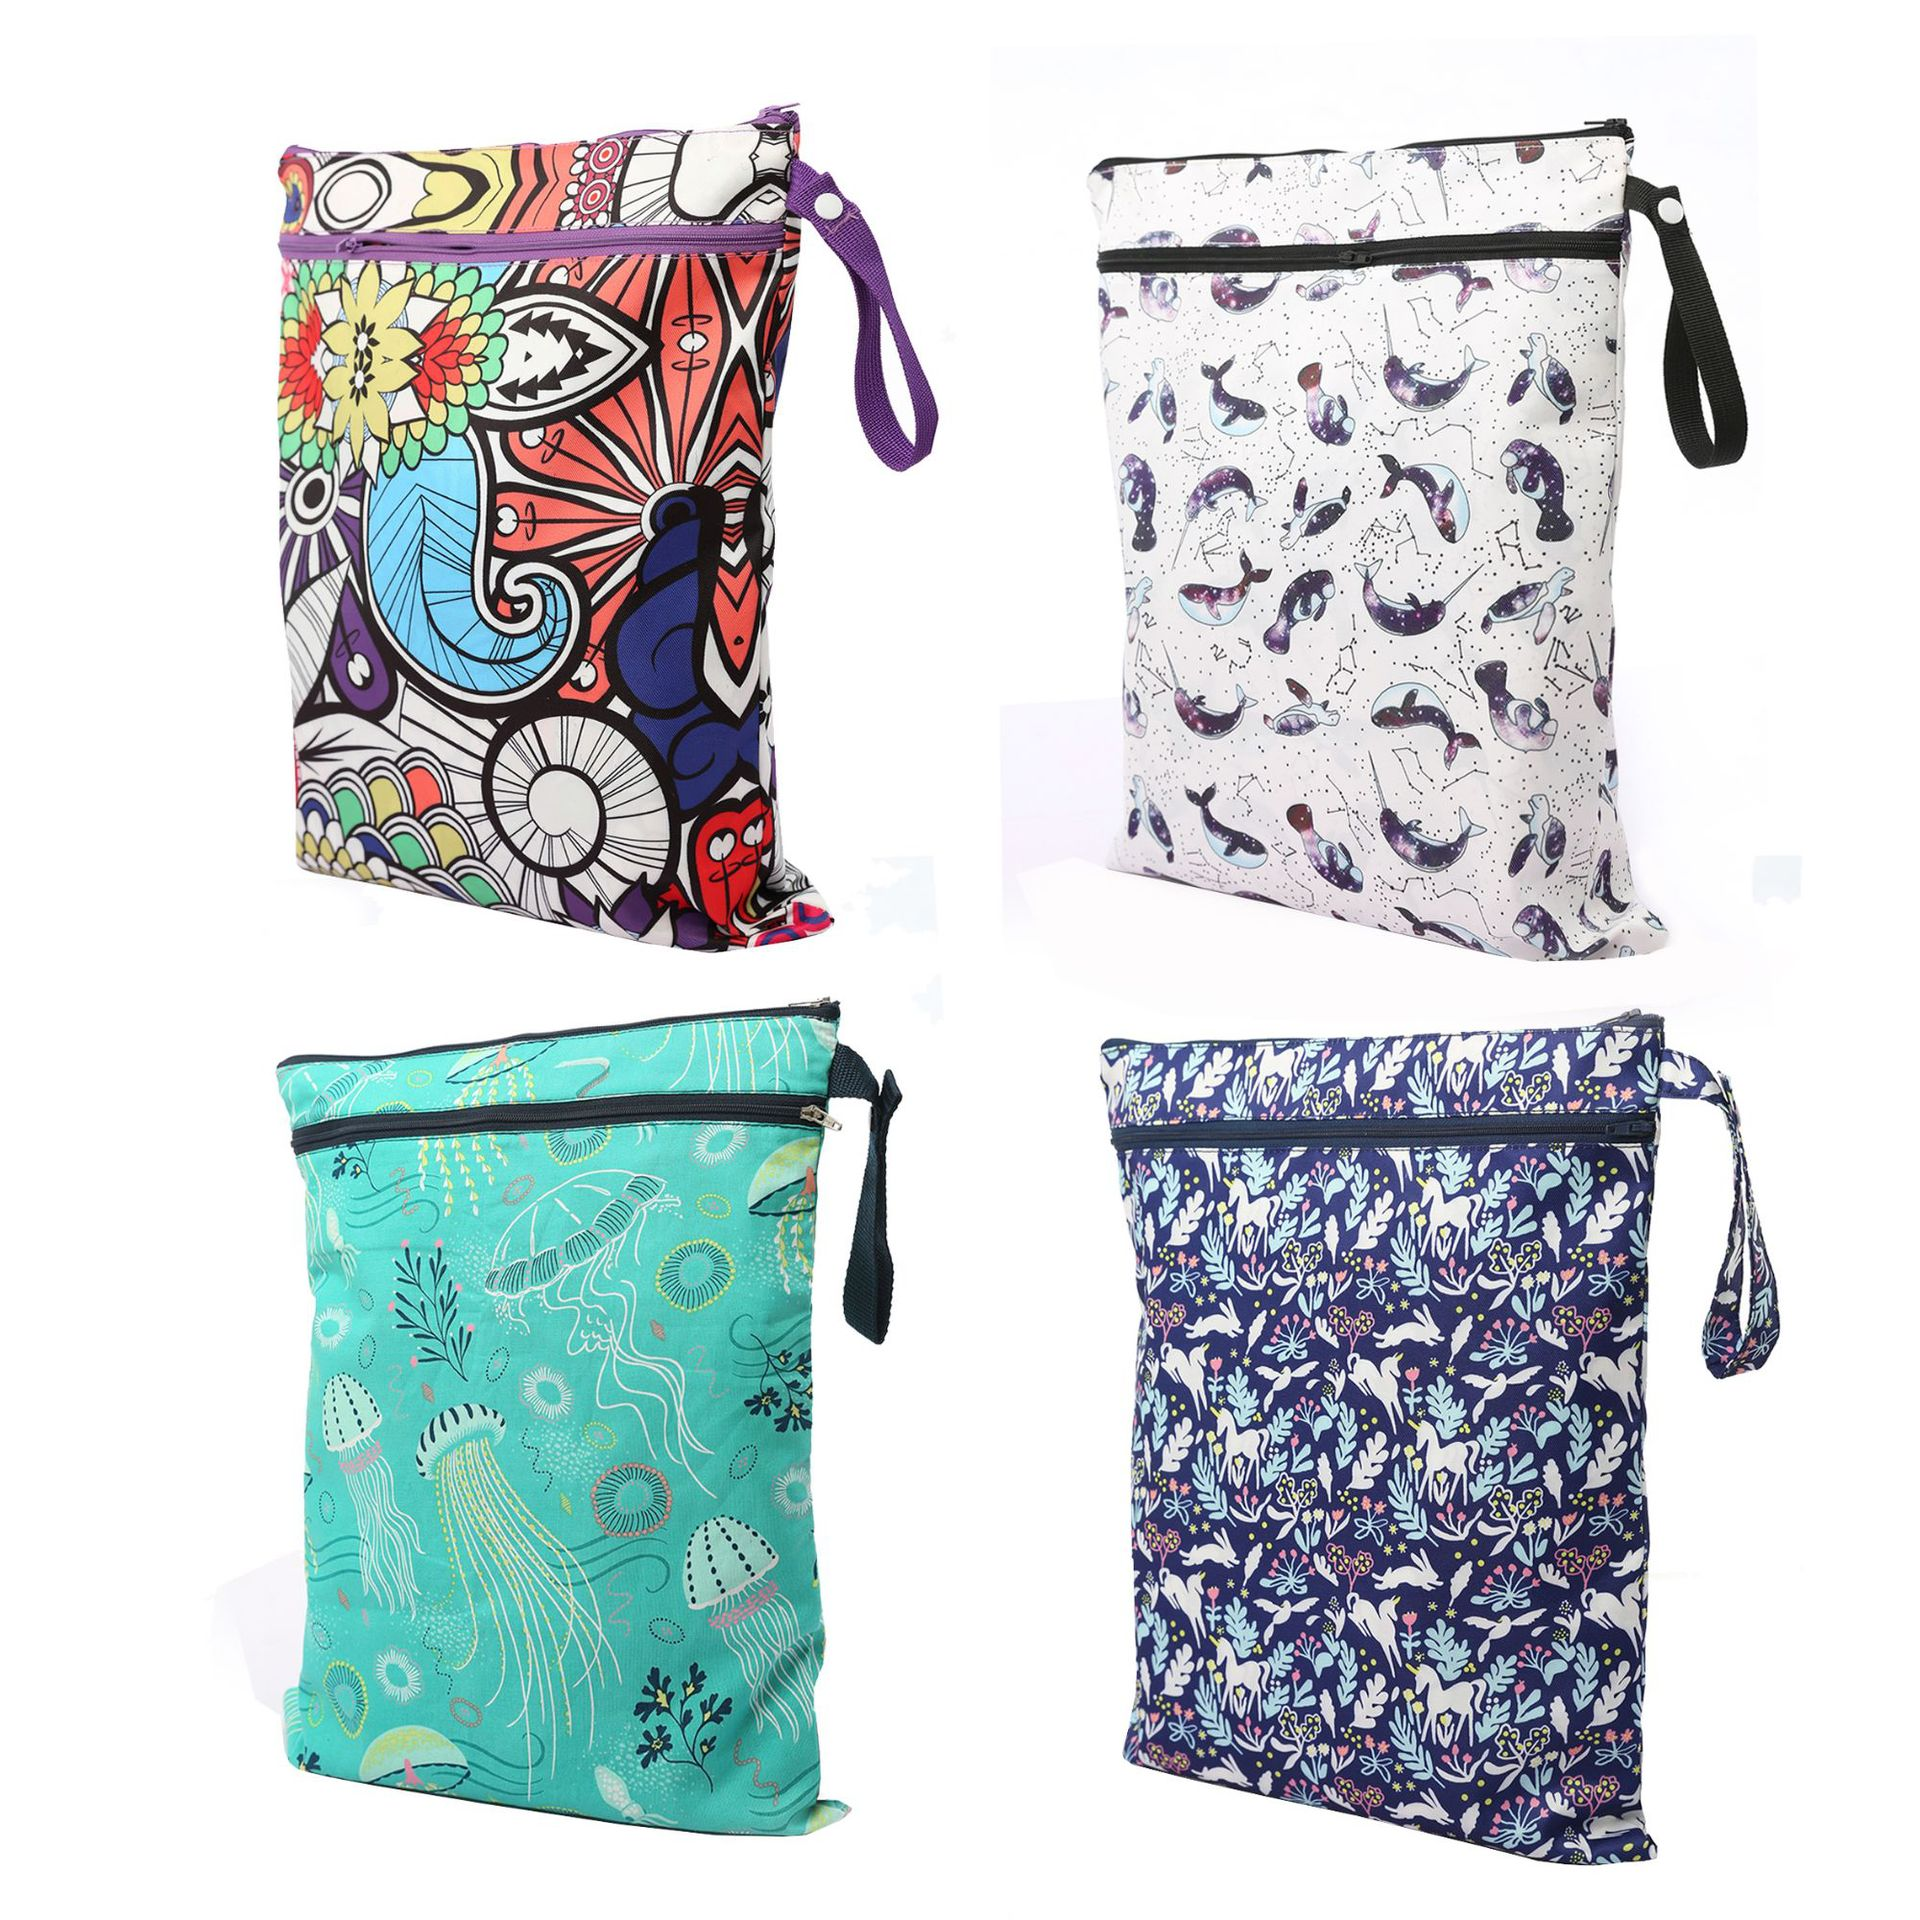 Baby Diaper Bags Changing Pads Mummy Bags Zippered Waterproof Newborn Infant Wet Bag For Menstrual Pads Kids Nappy Inserts Bags